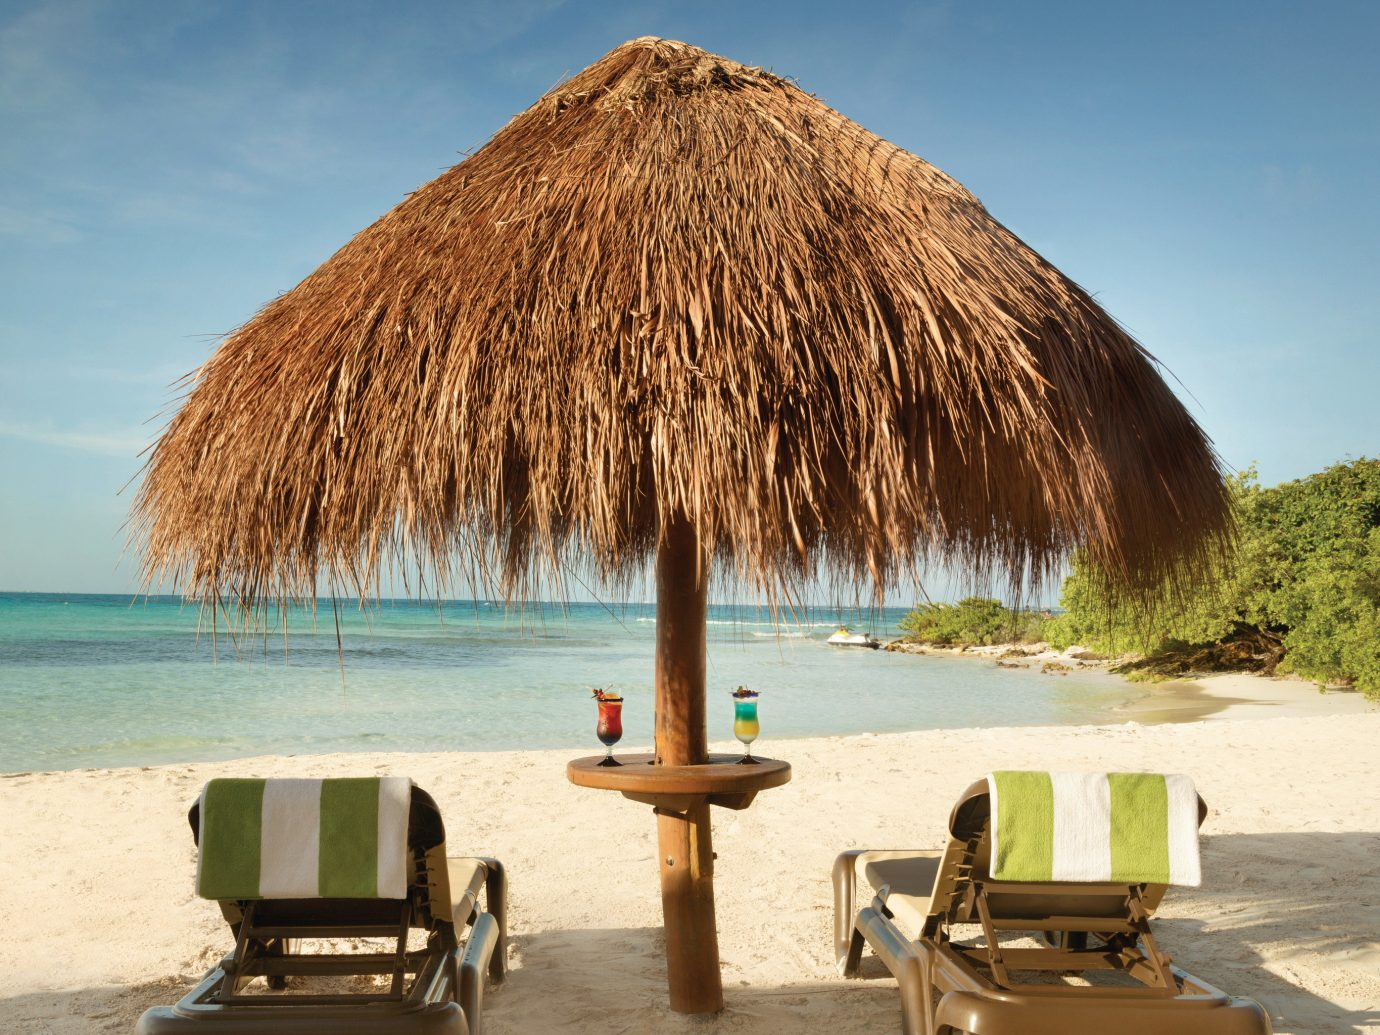 All-Inclusive Resorts Family Travel Hotels Romance Travel Tips sky outdoor ground water Beach body of water tree Sea vacation Ocean arecales Coast Nature shore hut bay Island Lagoon day sandy